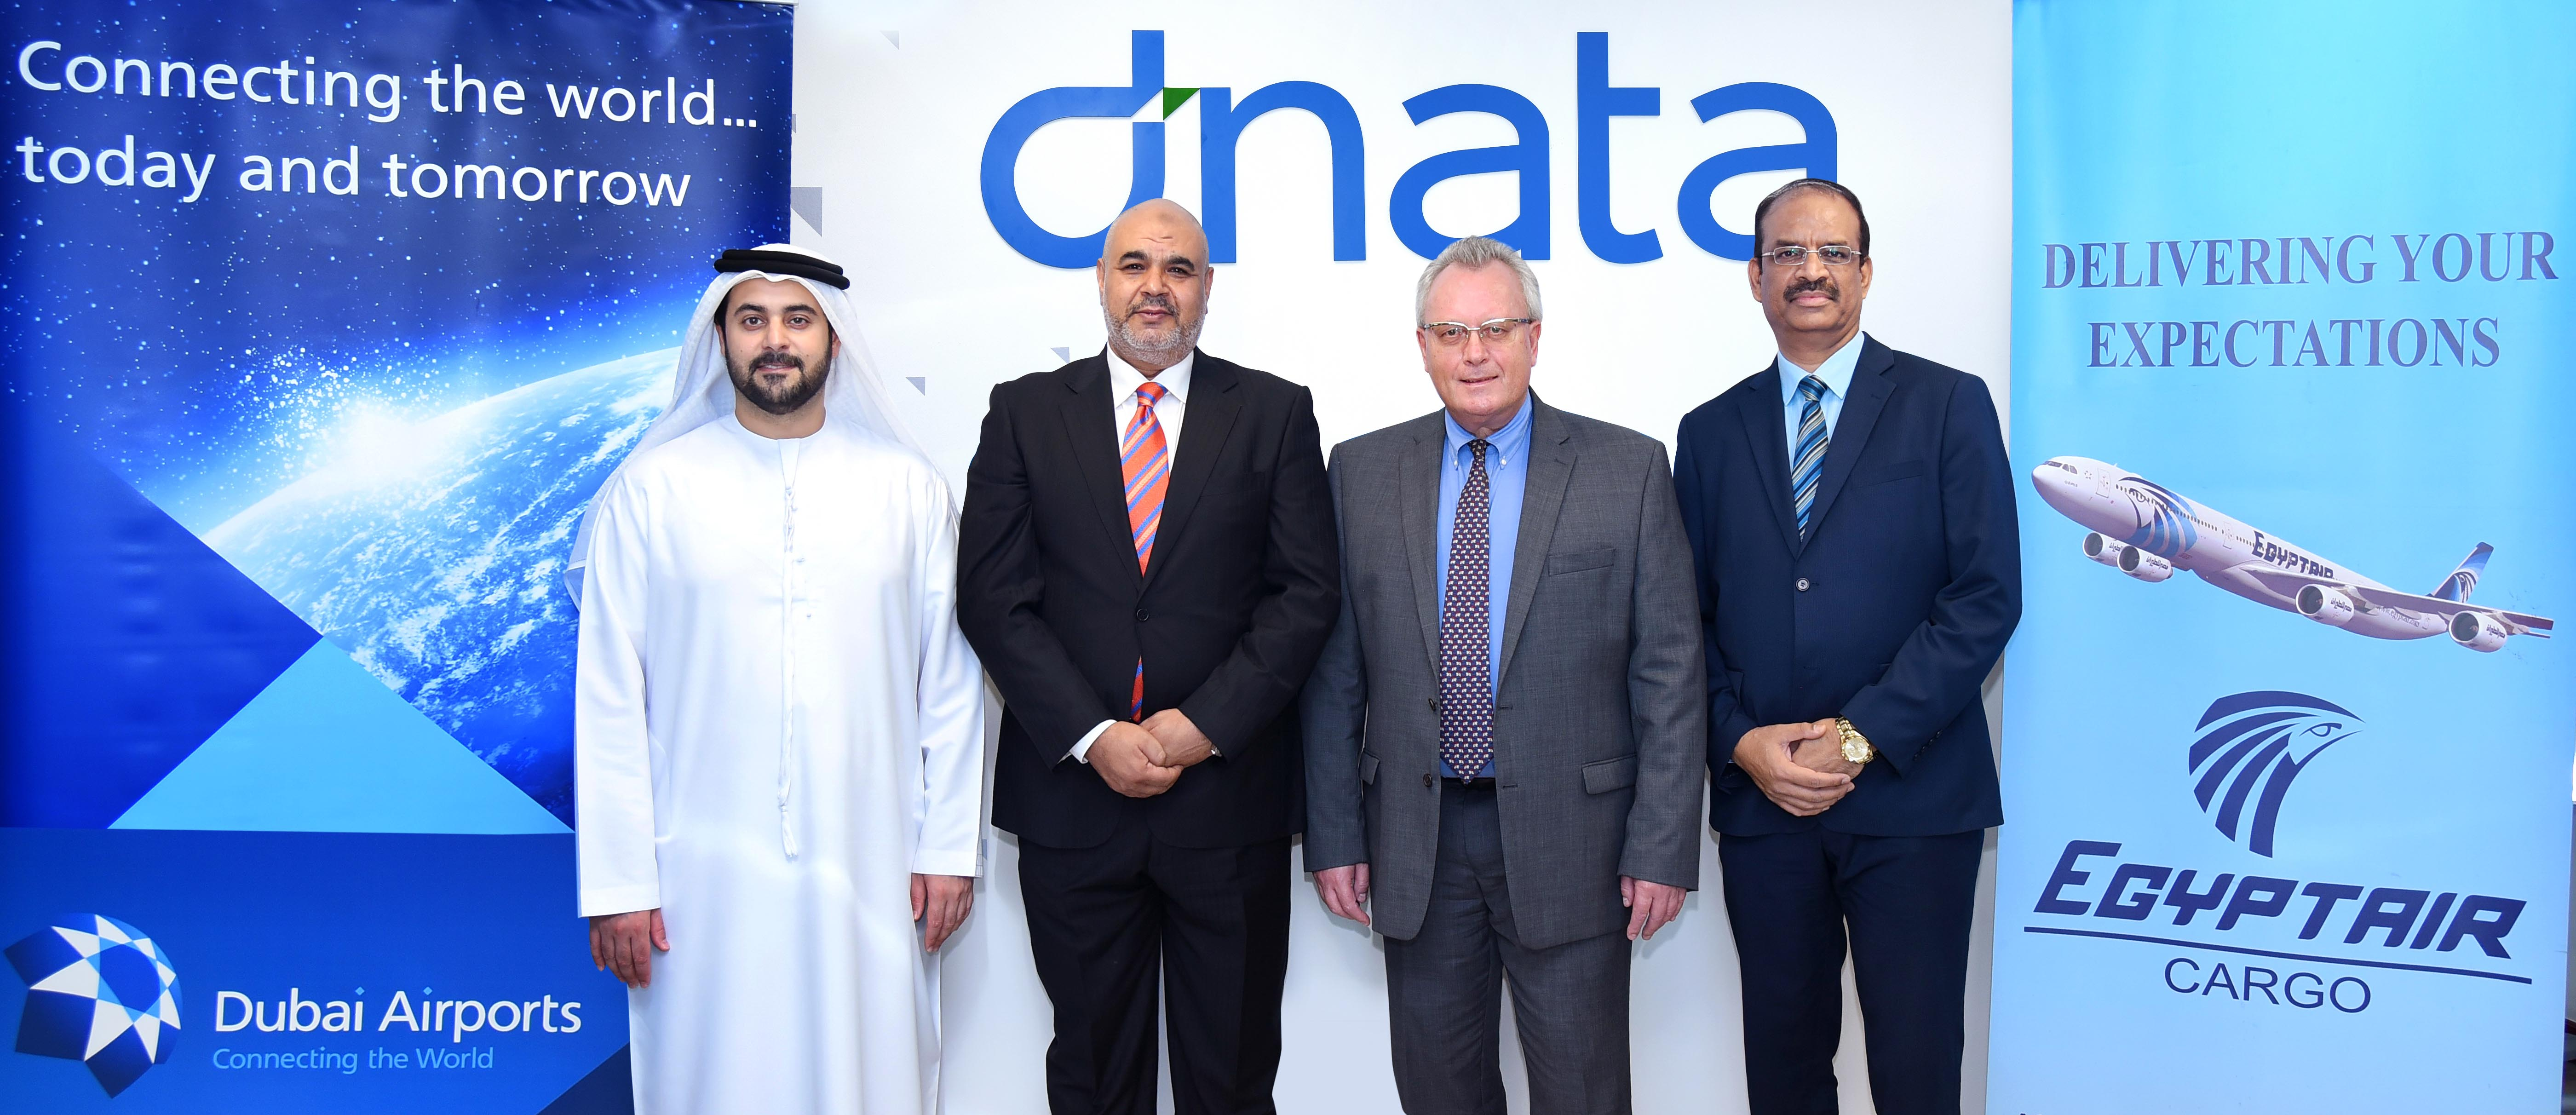 dnata expands partnership with EGYPTAIR in Dubai